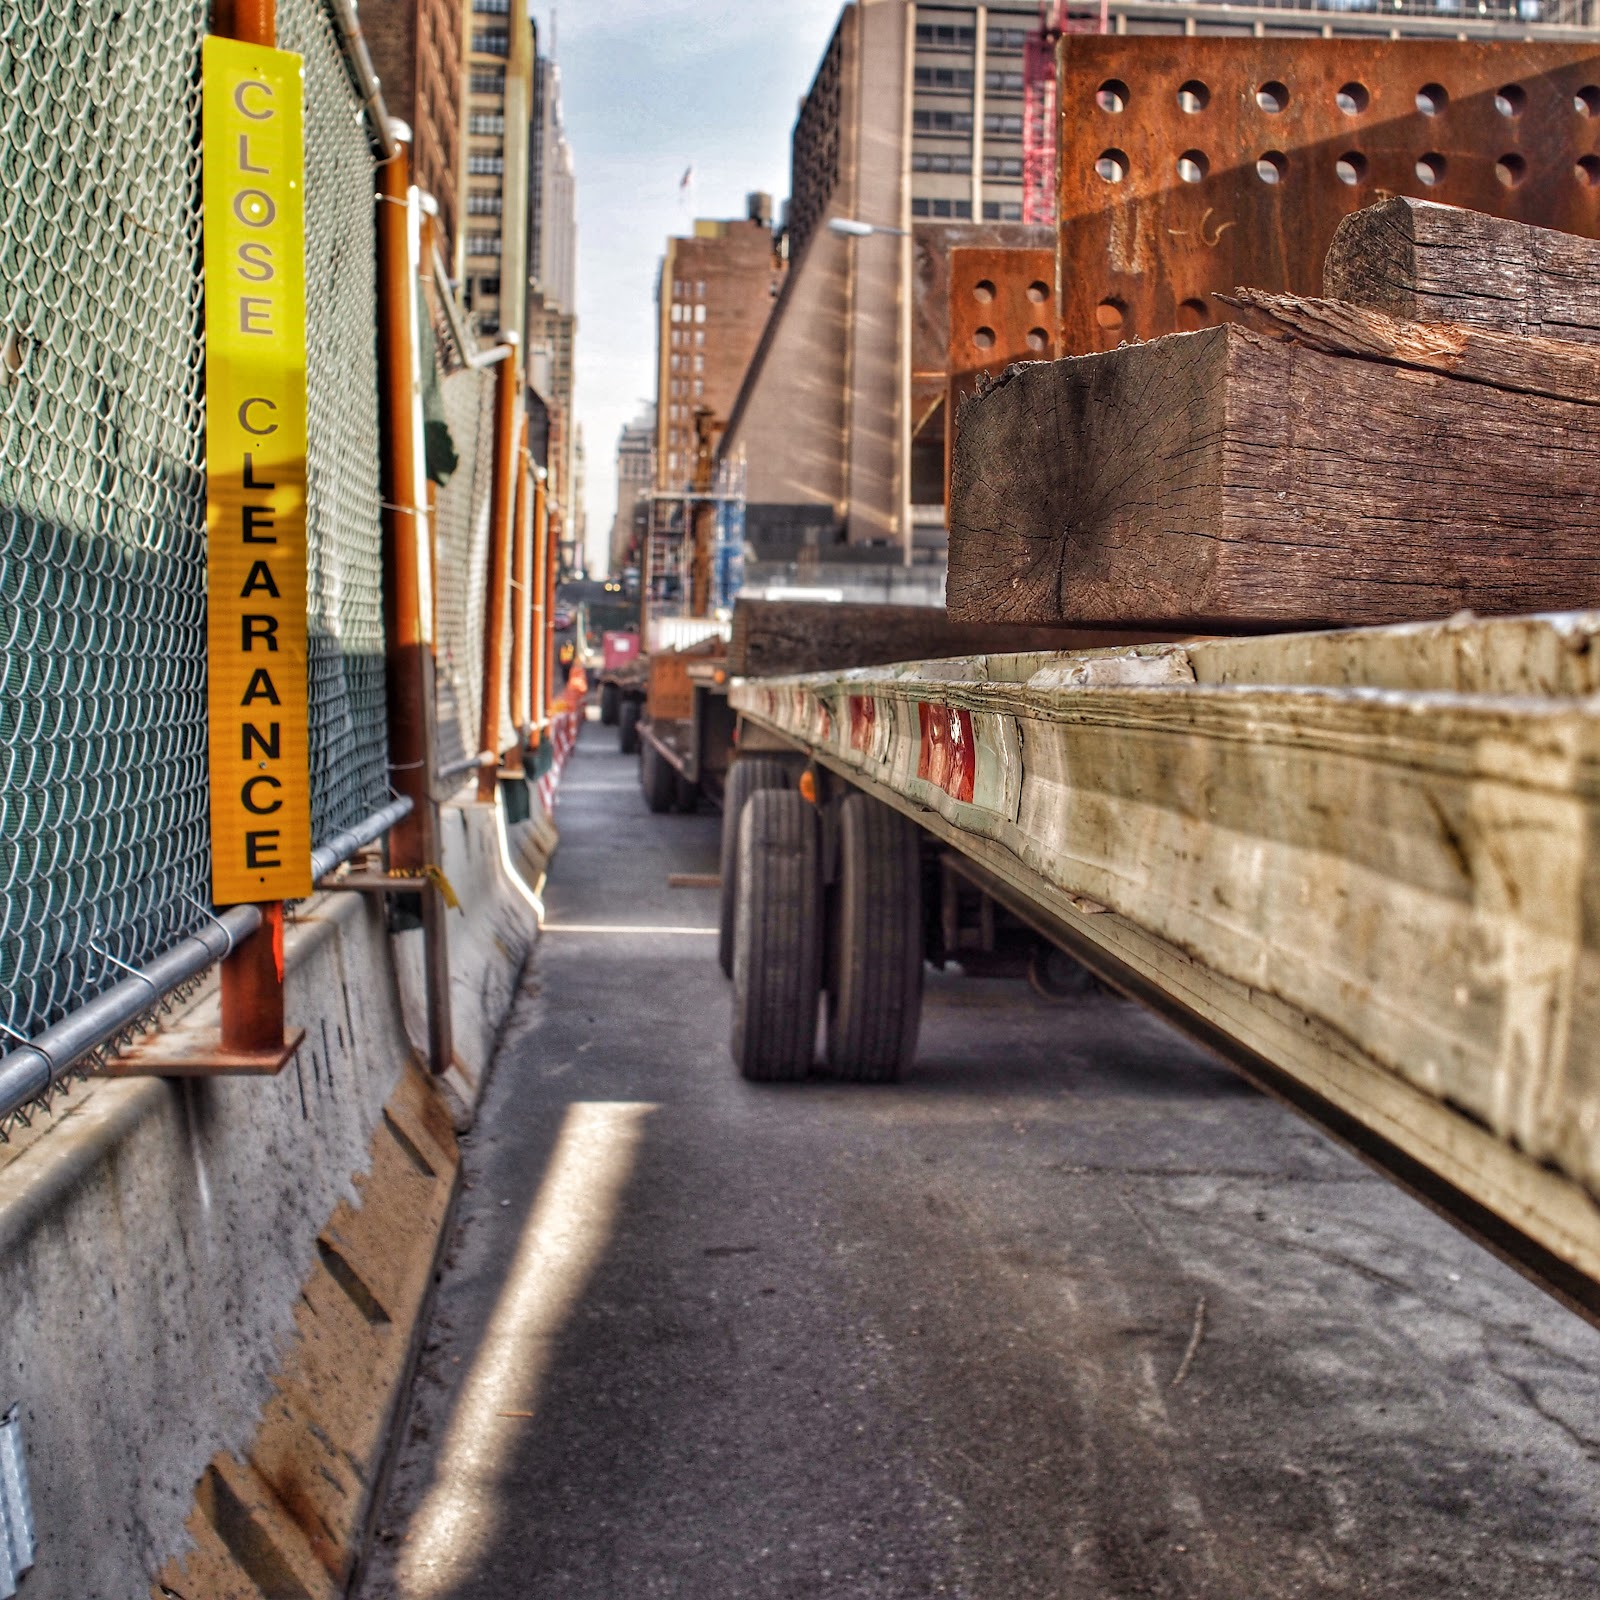 Close Clearance #CloseClearance #construction #nyc #hudsonyards #steelplates #nails ©2014 Nancy Lundebjerg